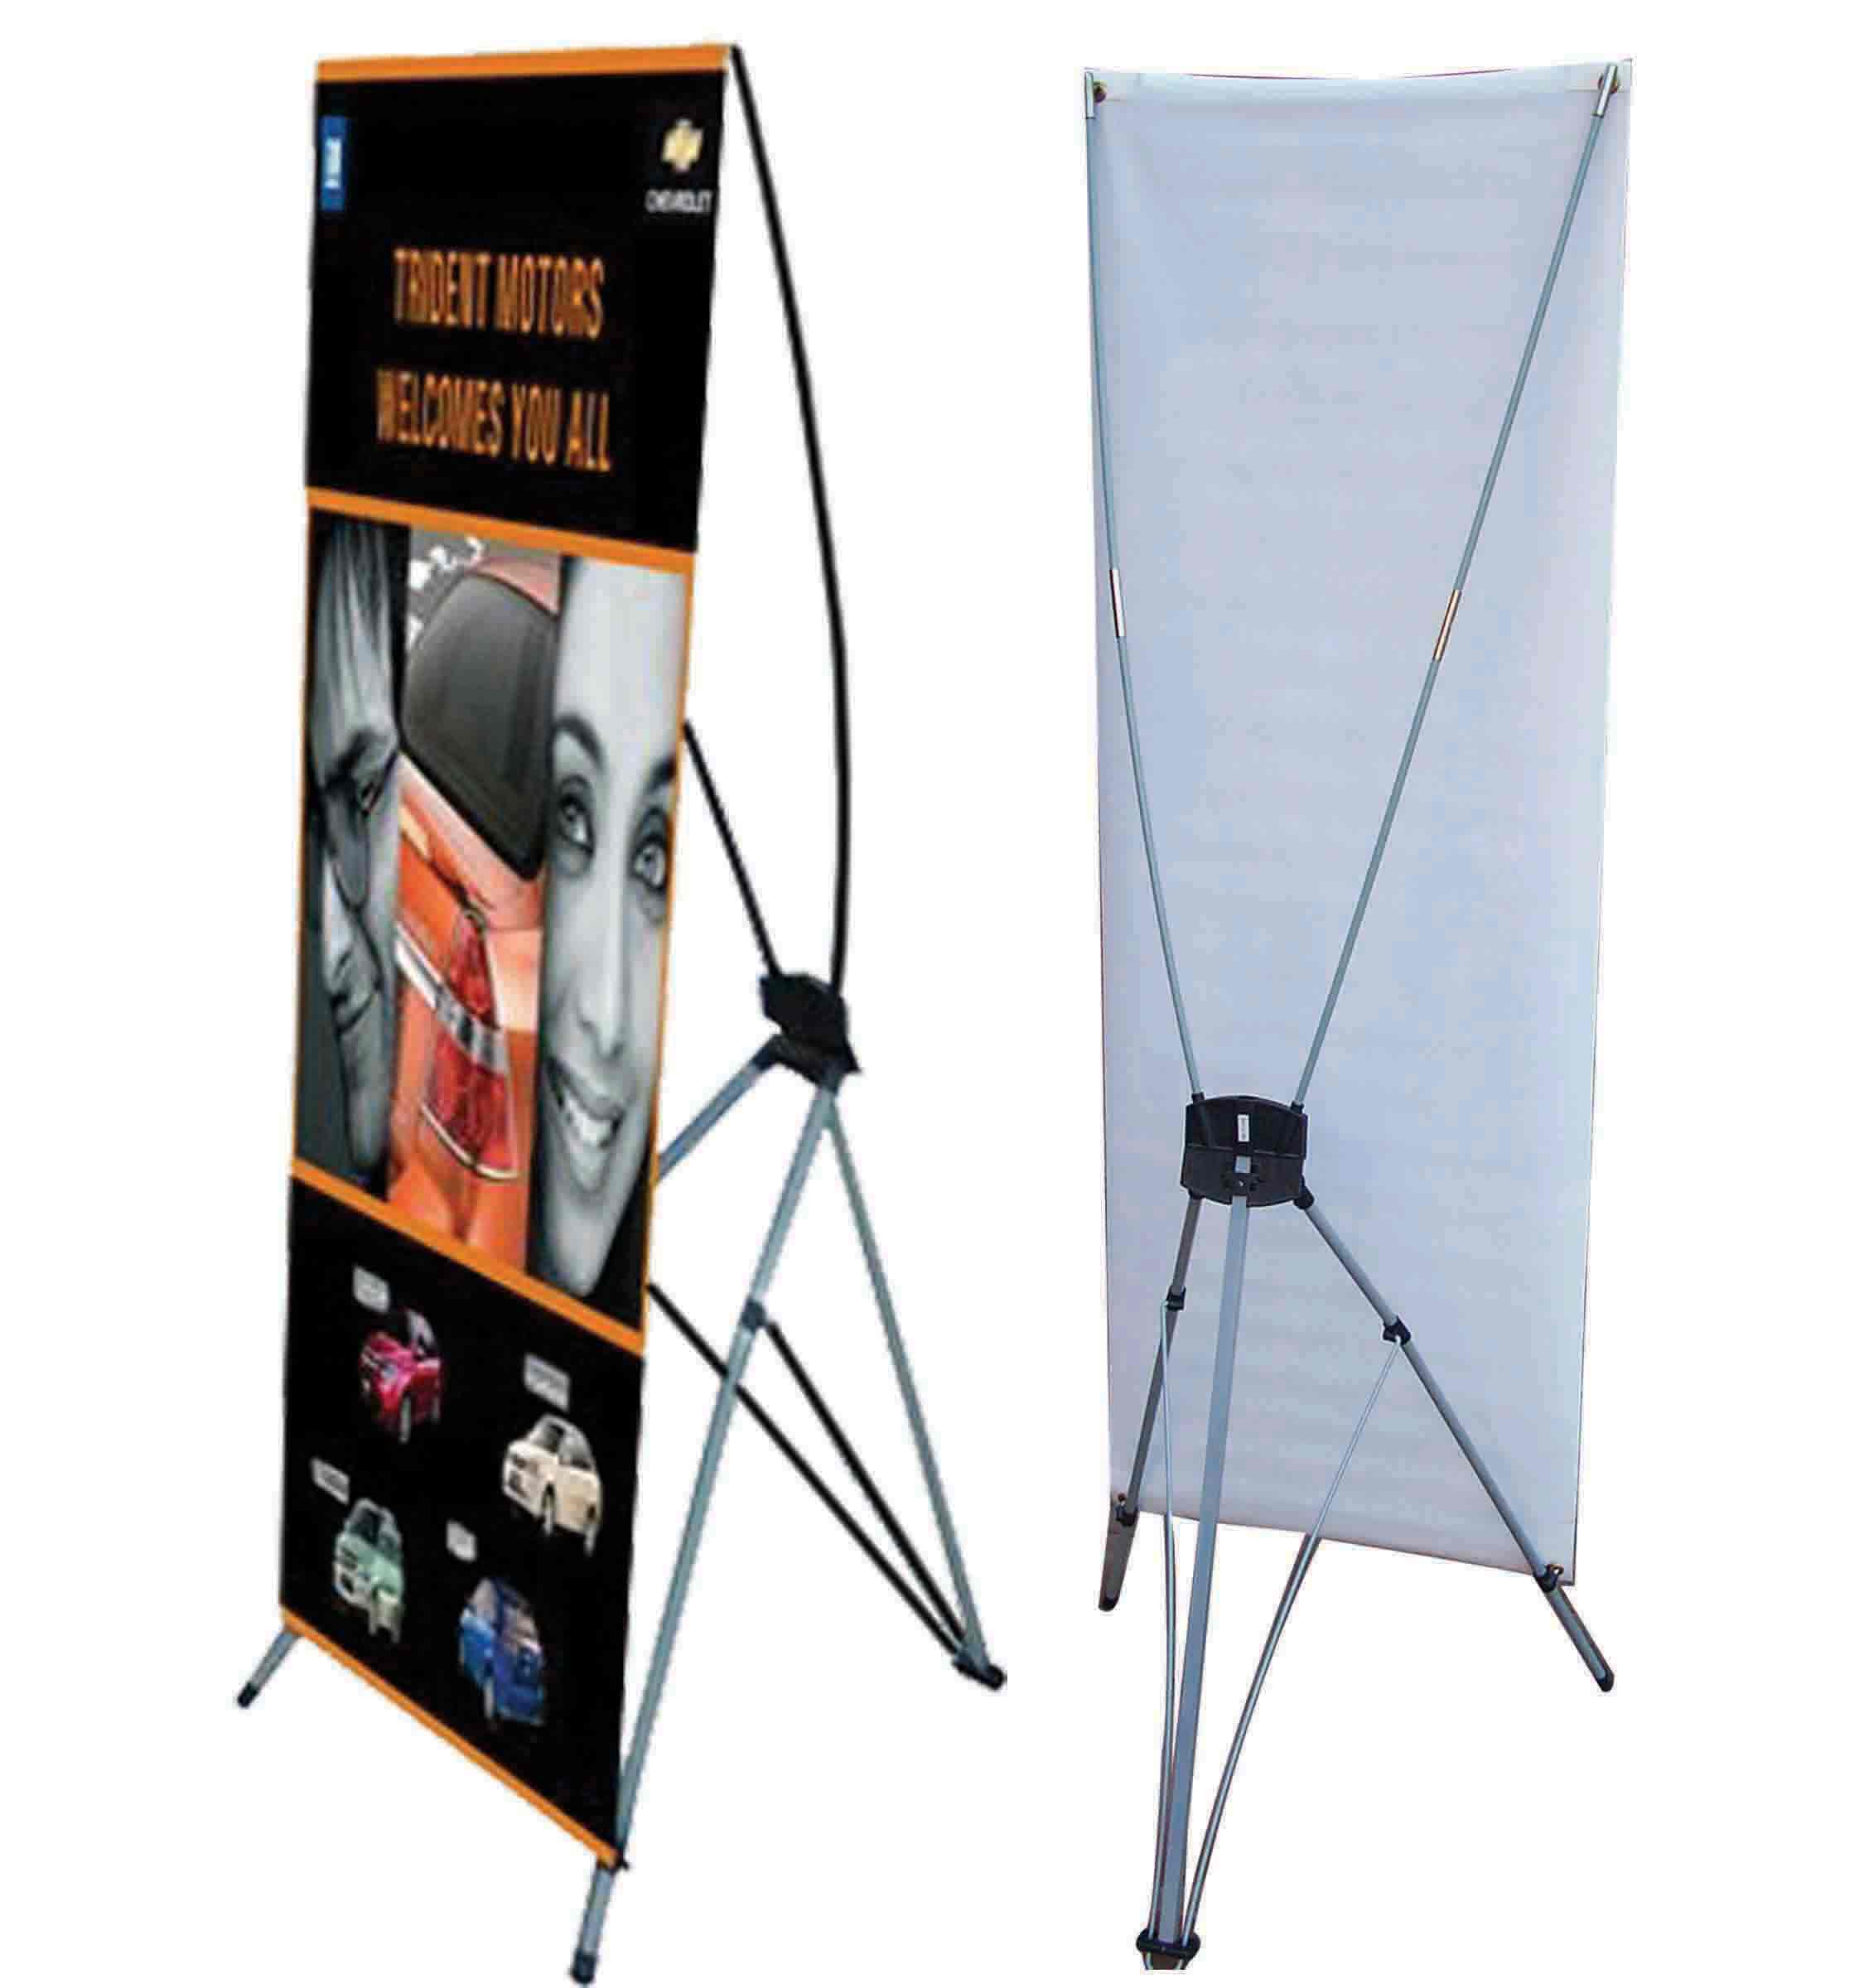 L Banner And X Banner Hi Tex Flags Amp Advertising Specialties